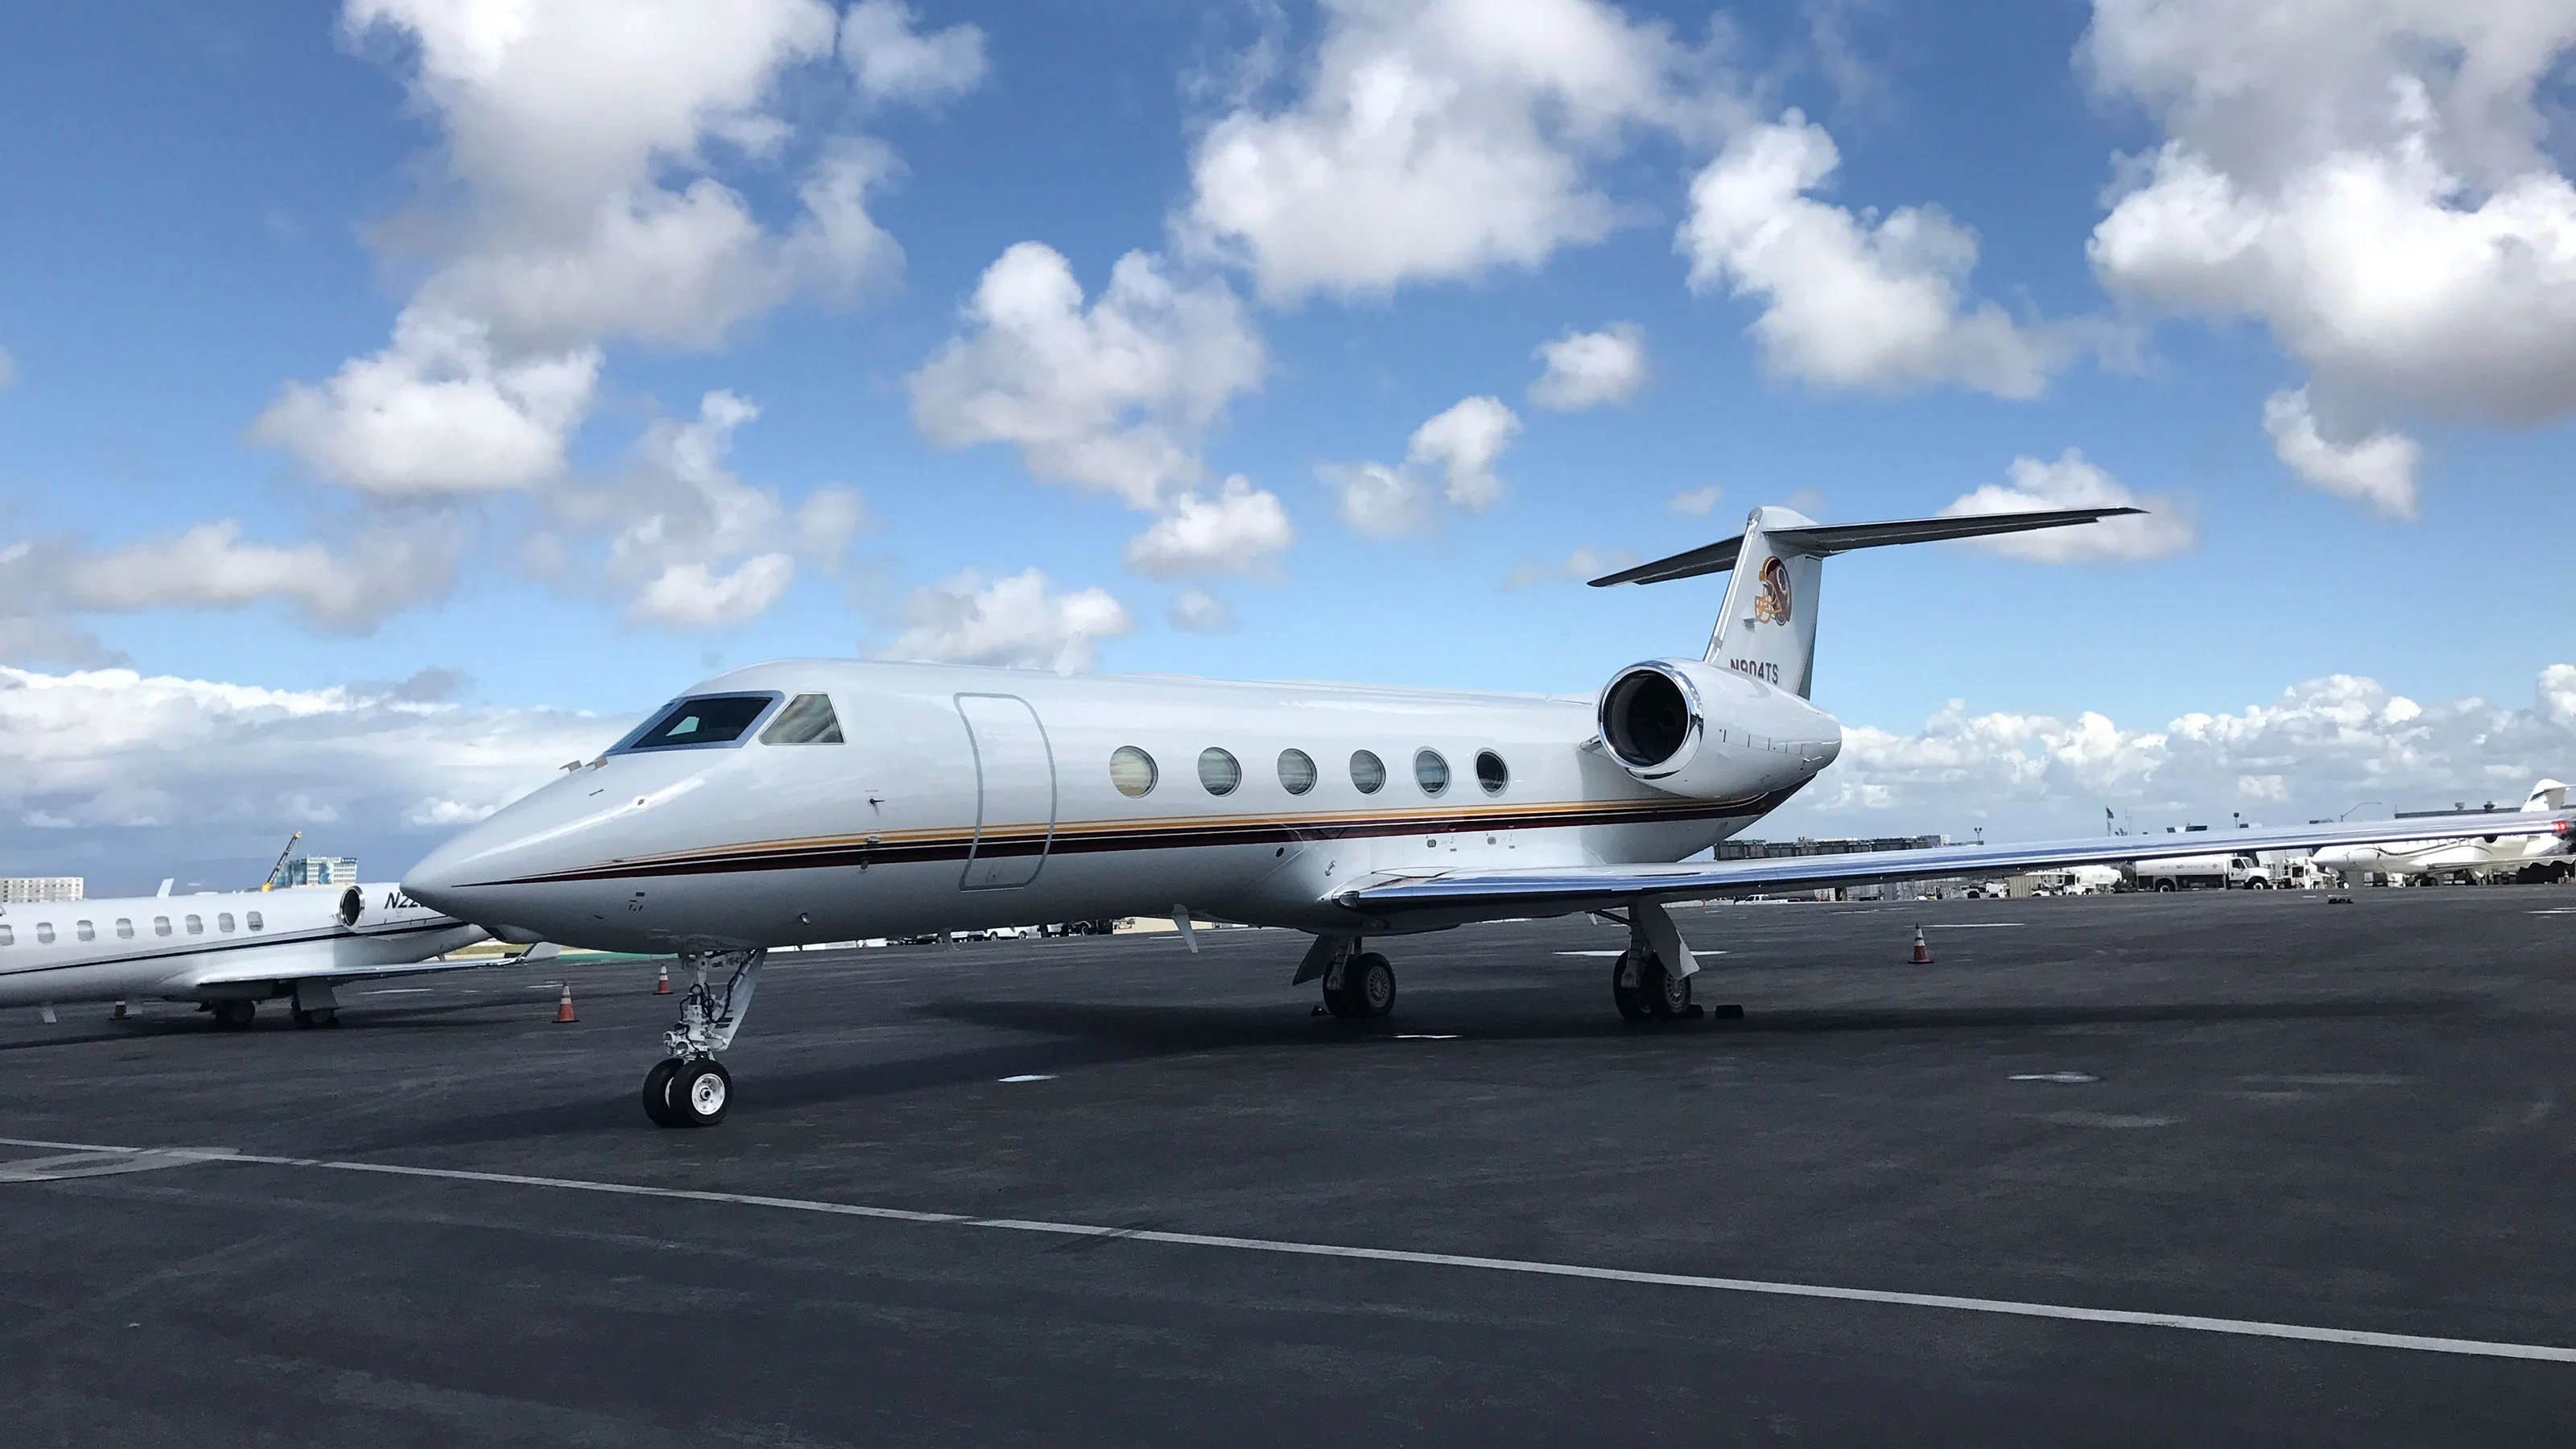 Everything you need to know about booking empty leg private jet flights - The Points